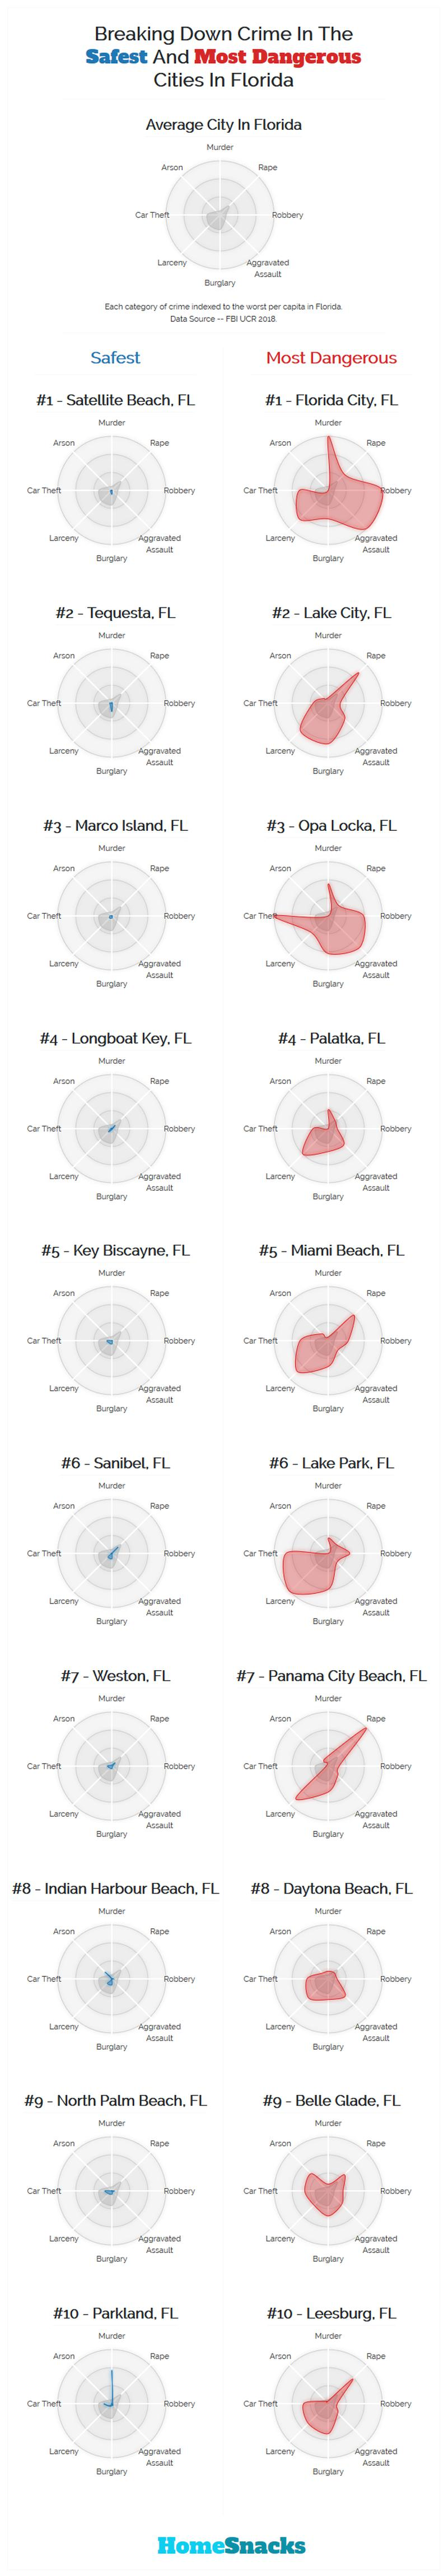 Safest Cities in Florida Breakdown